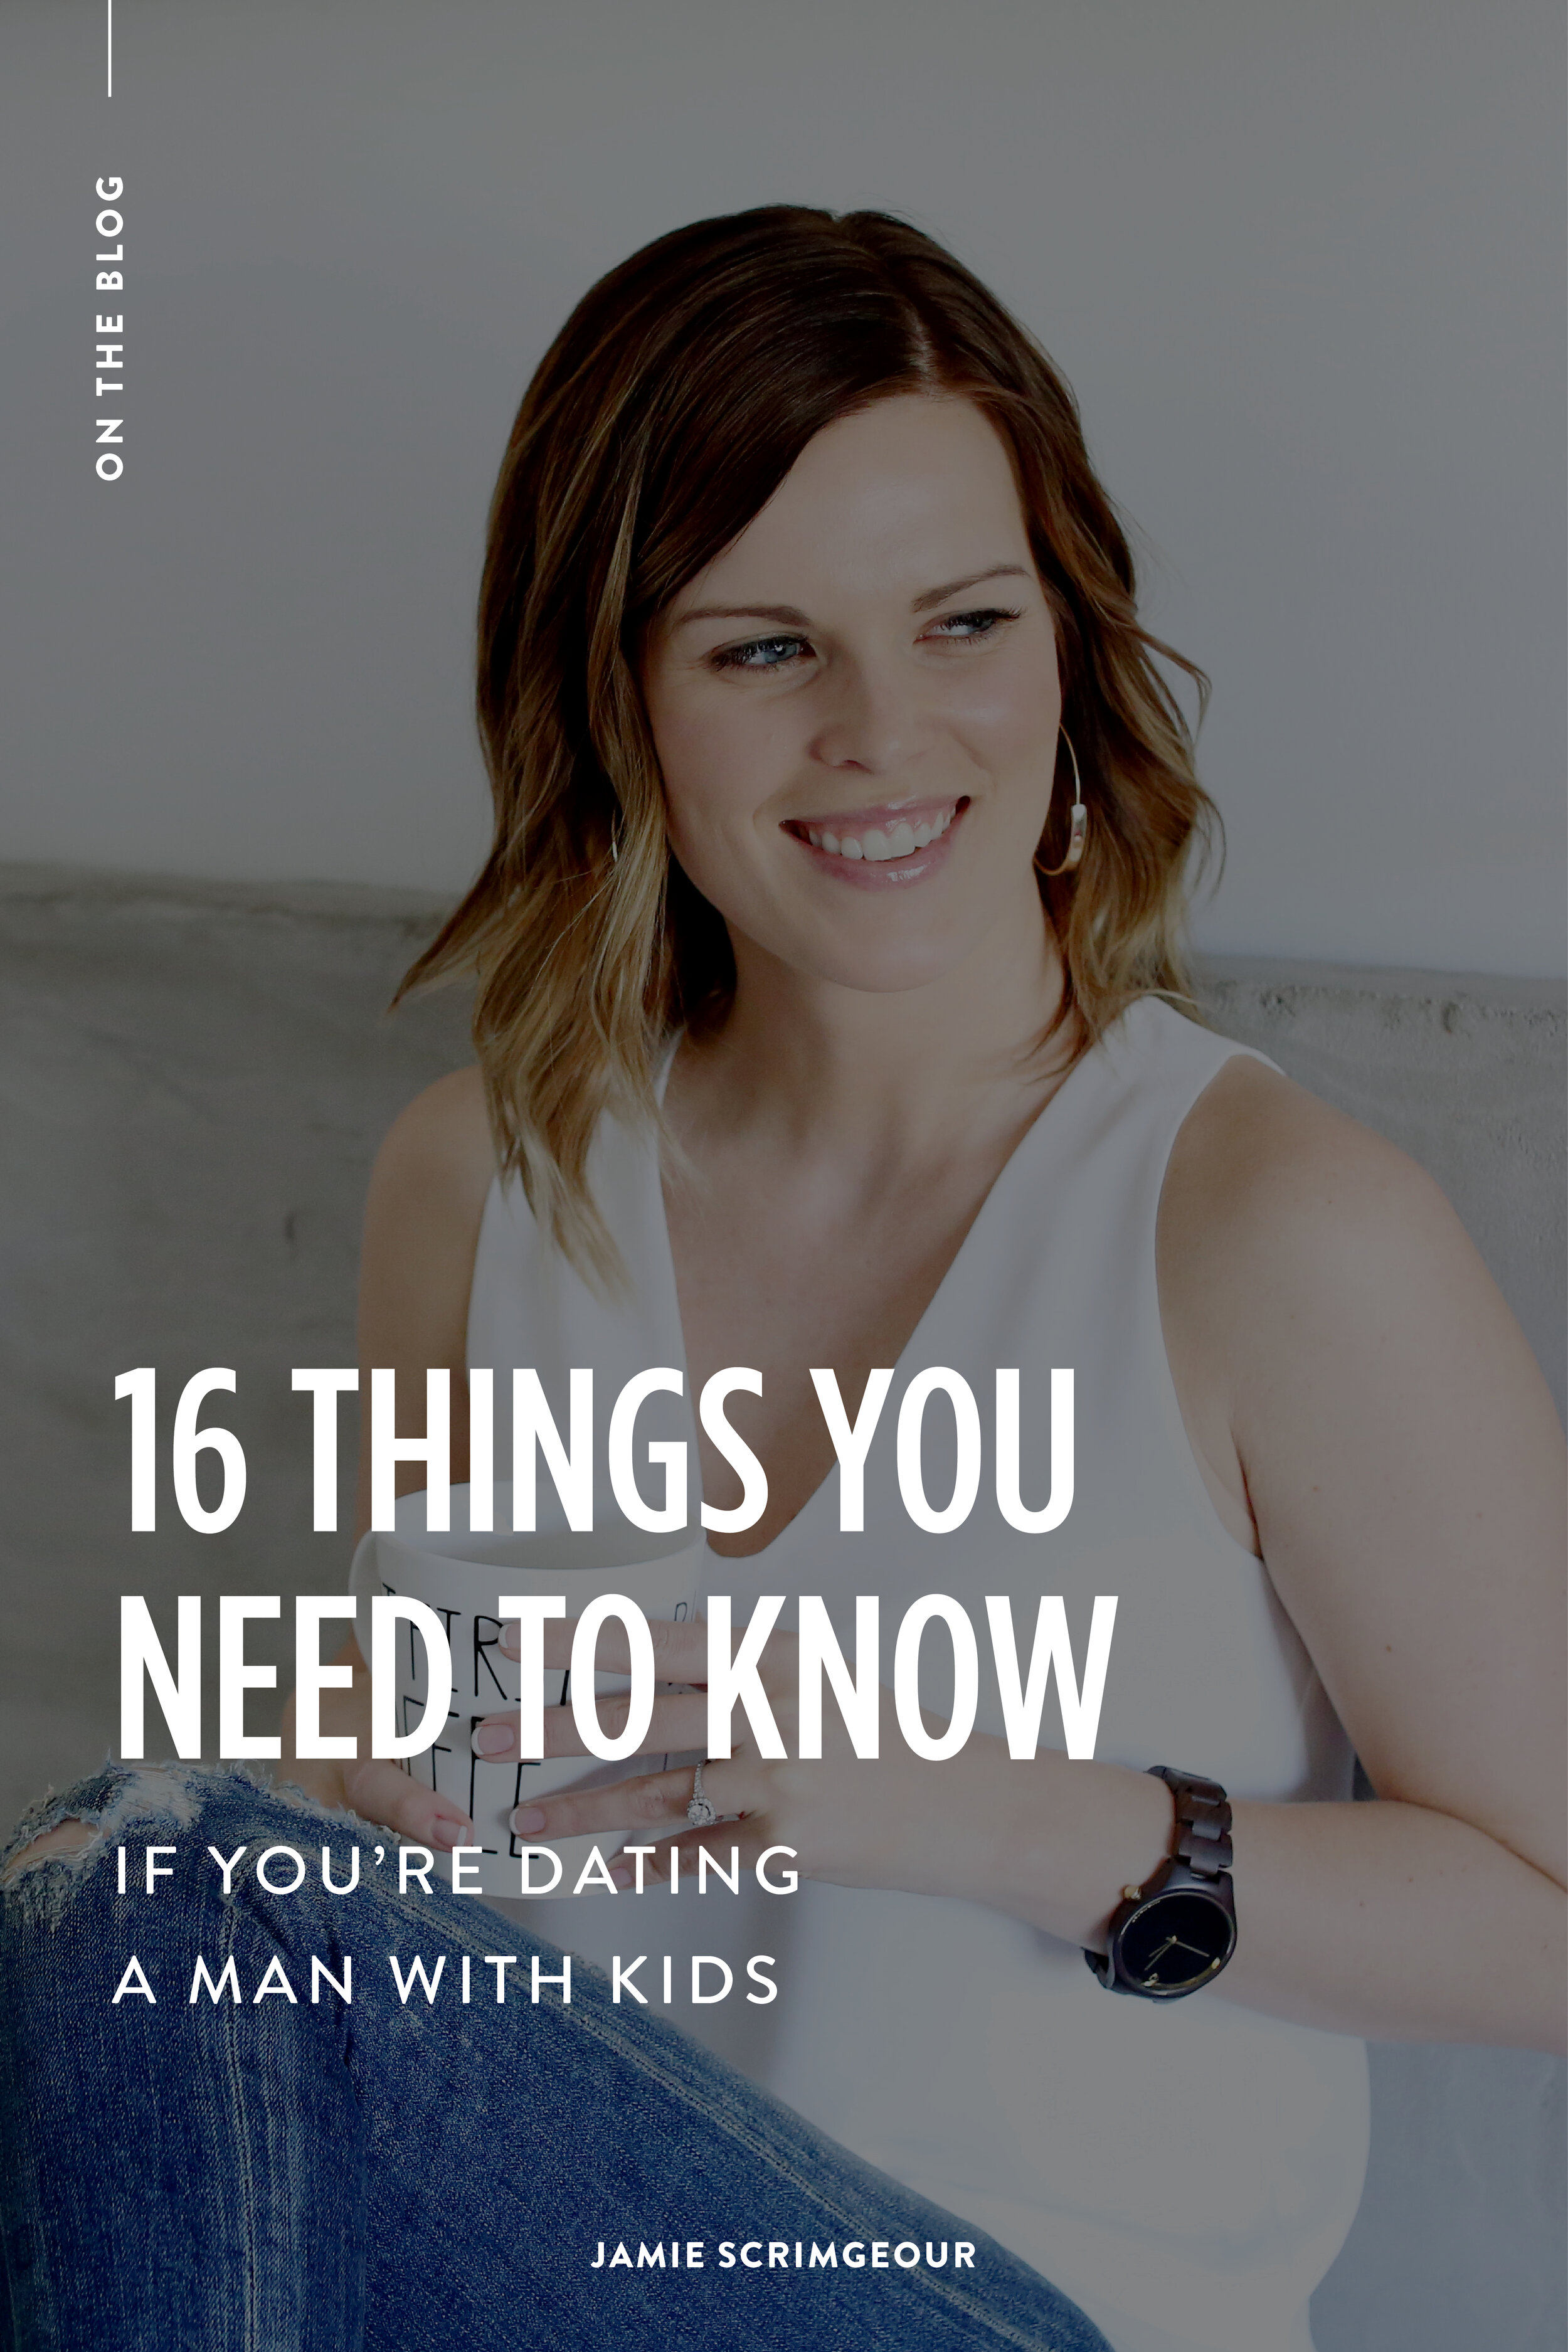 Dating A Man With Kids - 16 Things You Need To Know | Stepmom Help